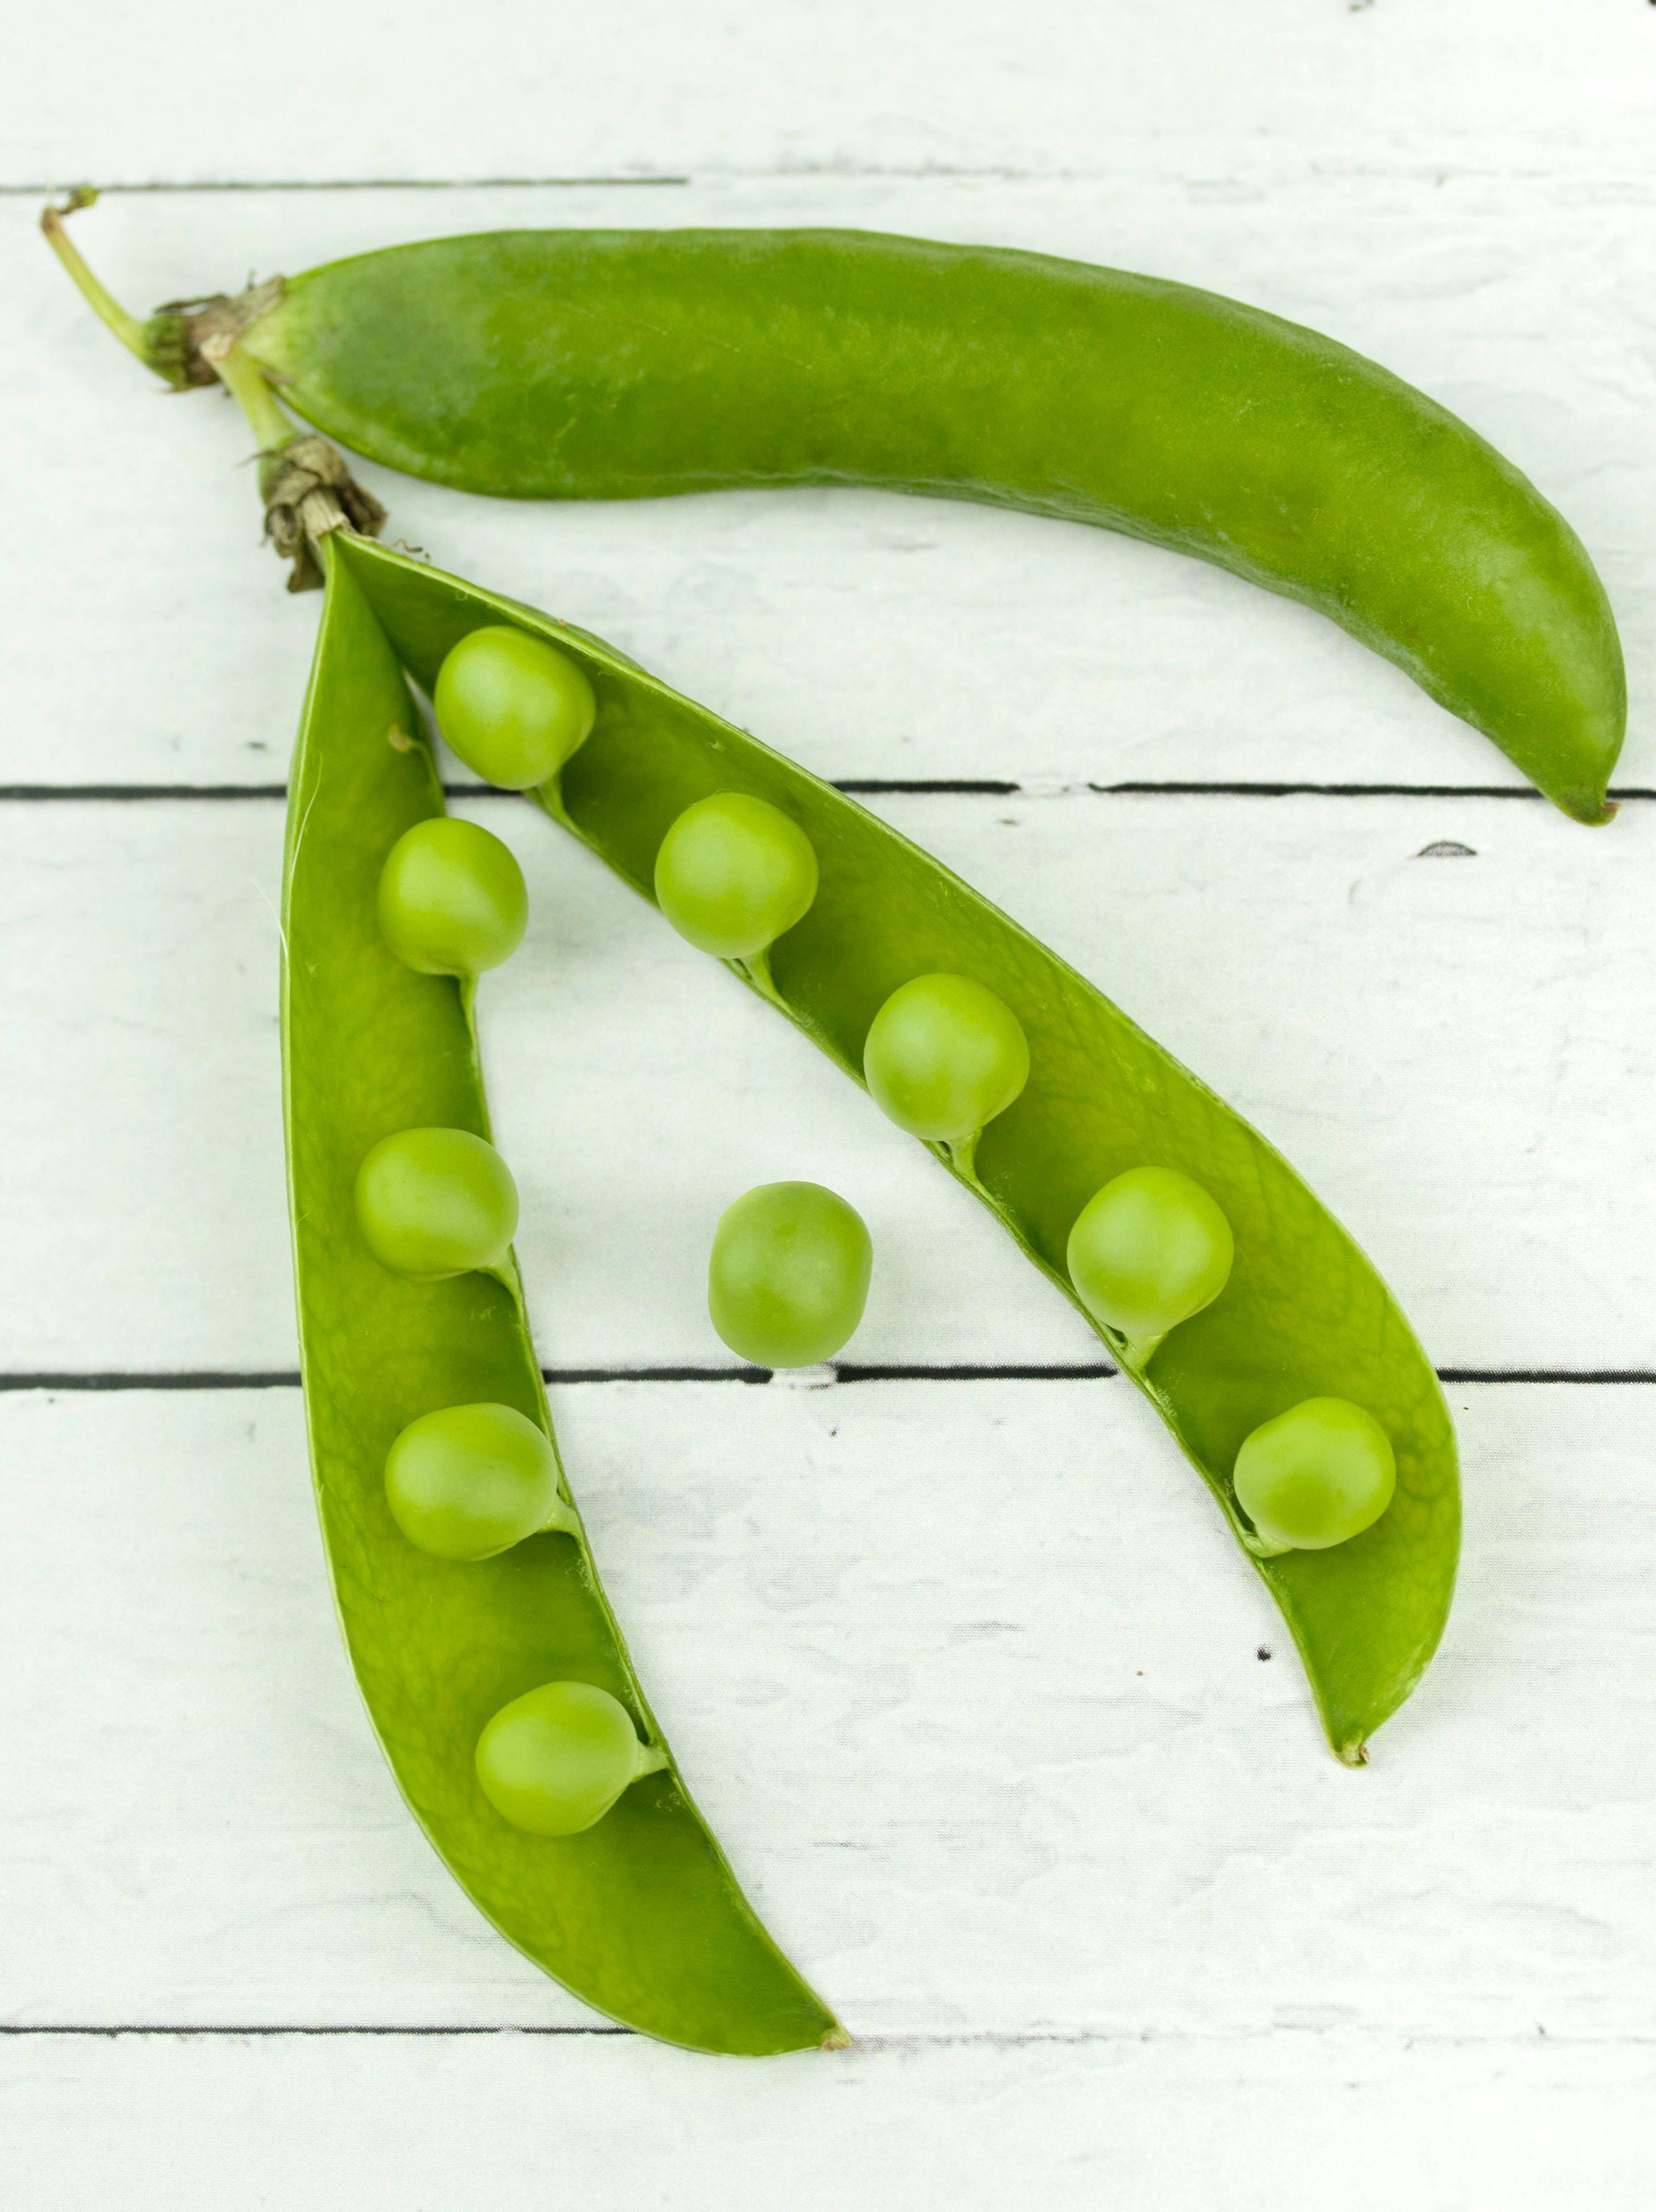 Apartment Gardening: Fall Veggies for Indoor Containers-image